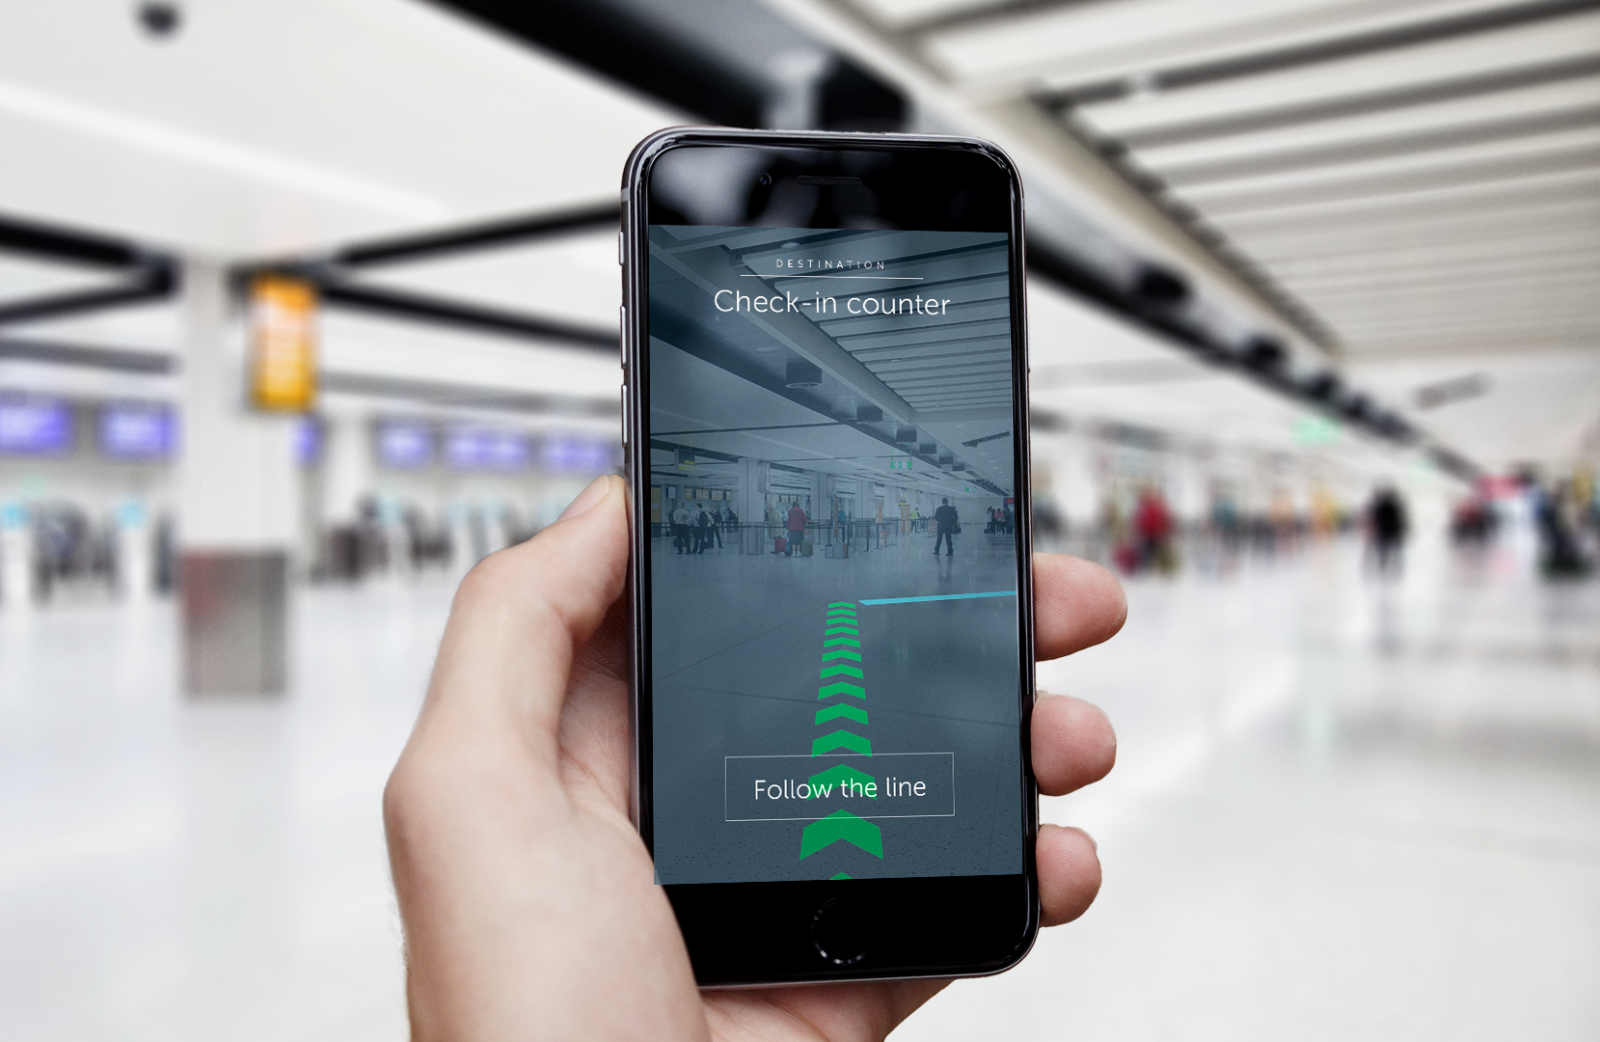 Gatwick Airport augmented reality navigation system